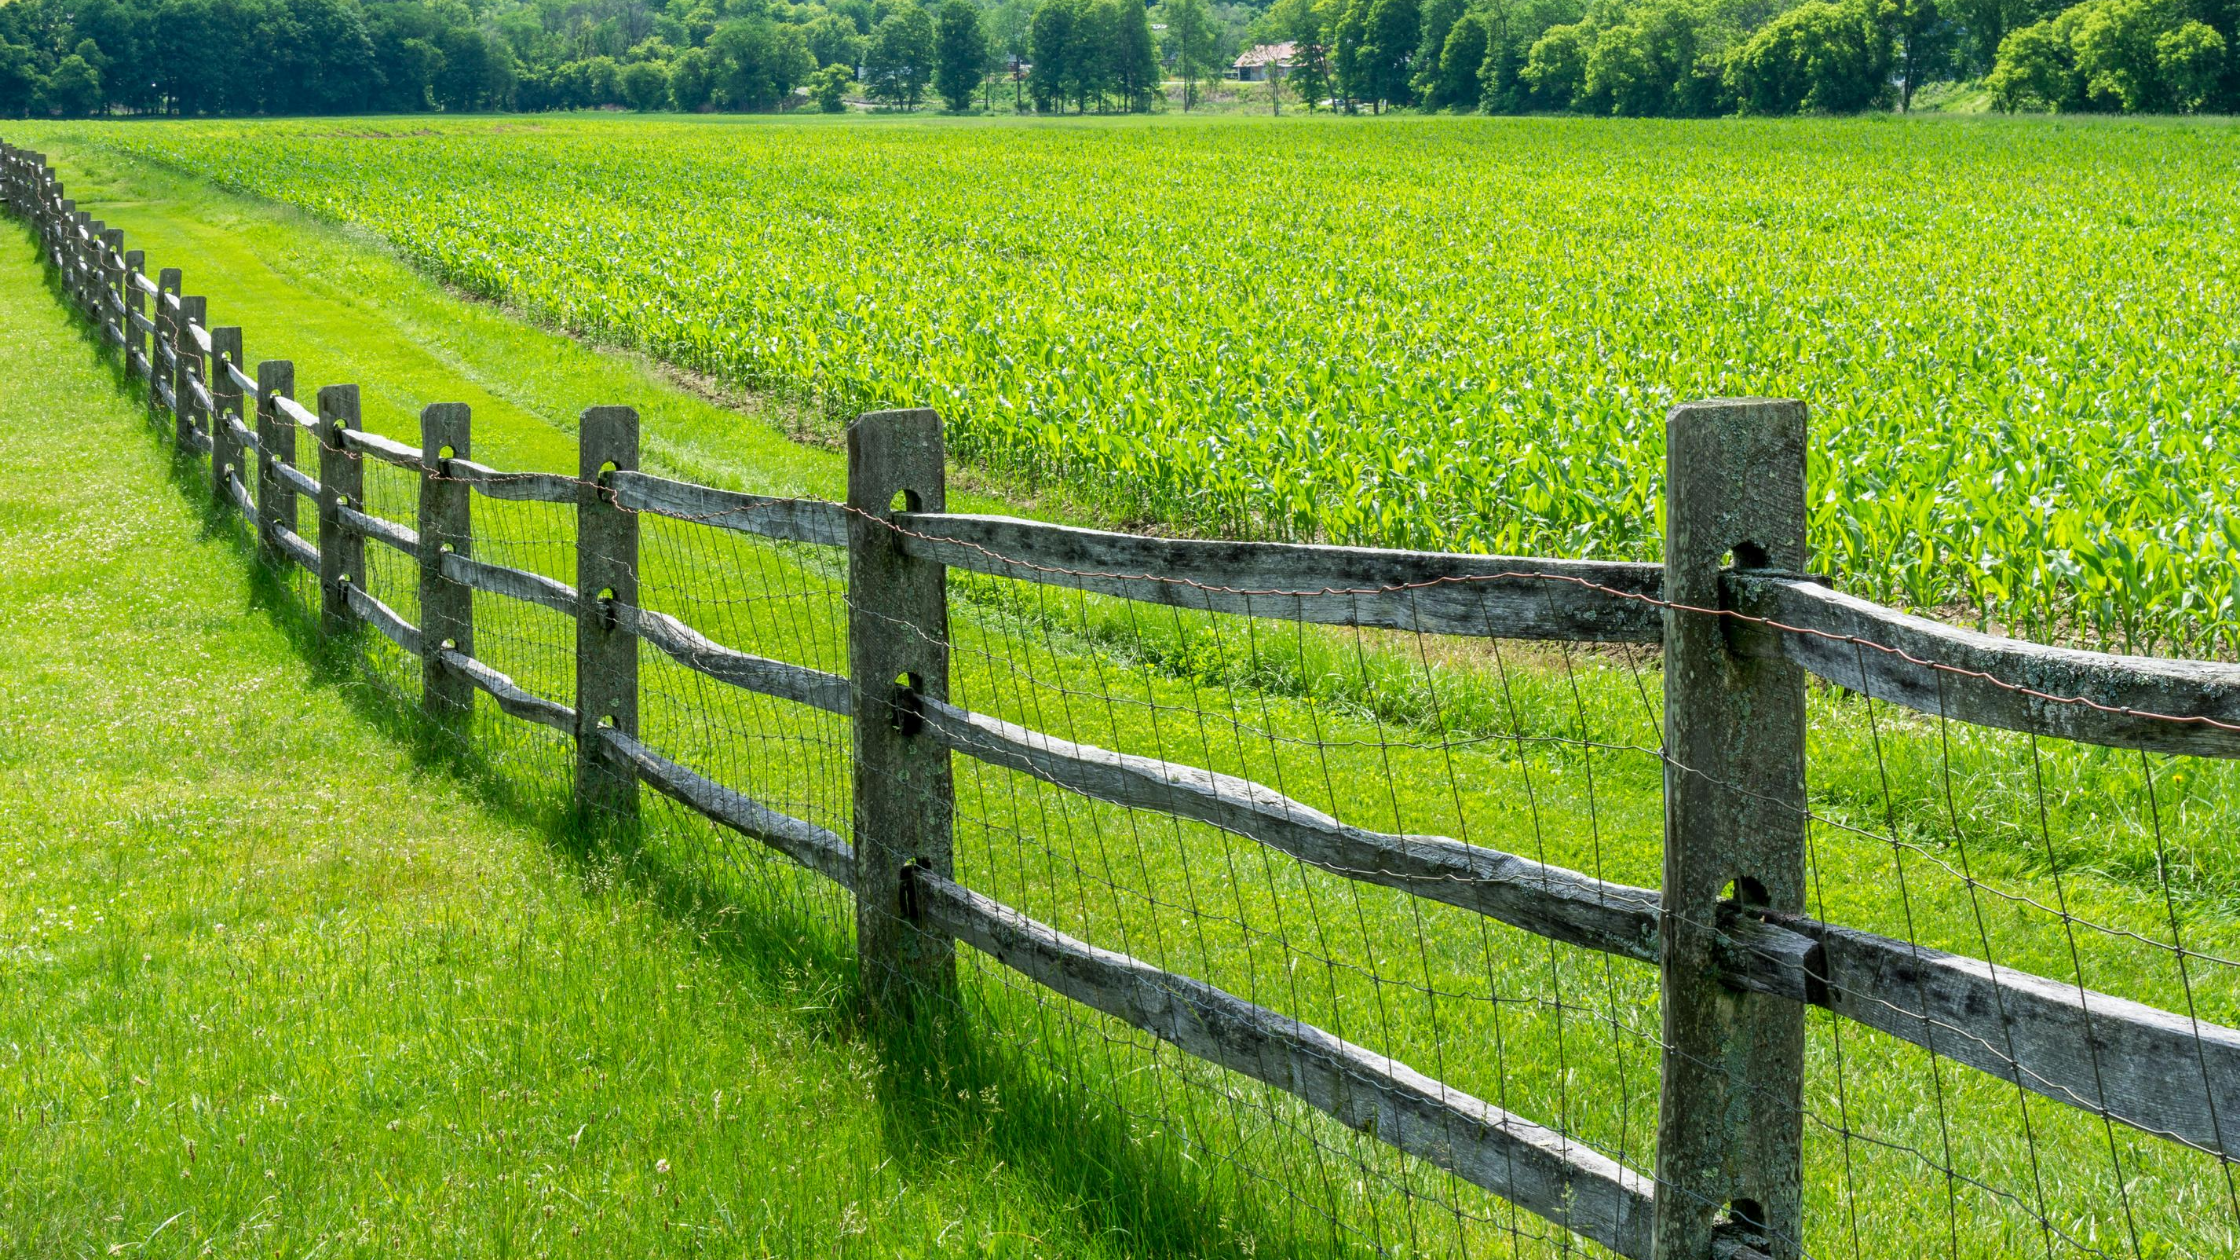 Fencing-in or fencing-out?